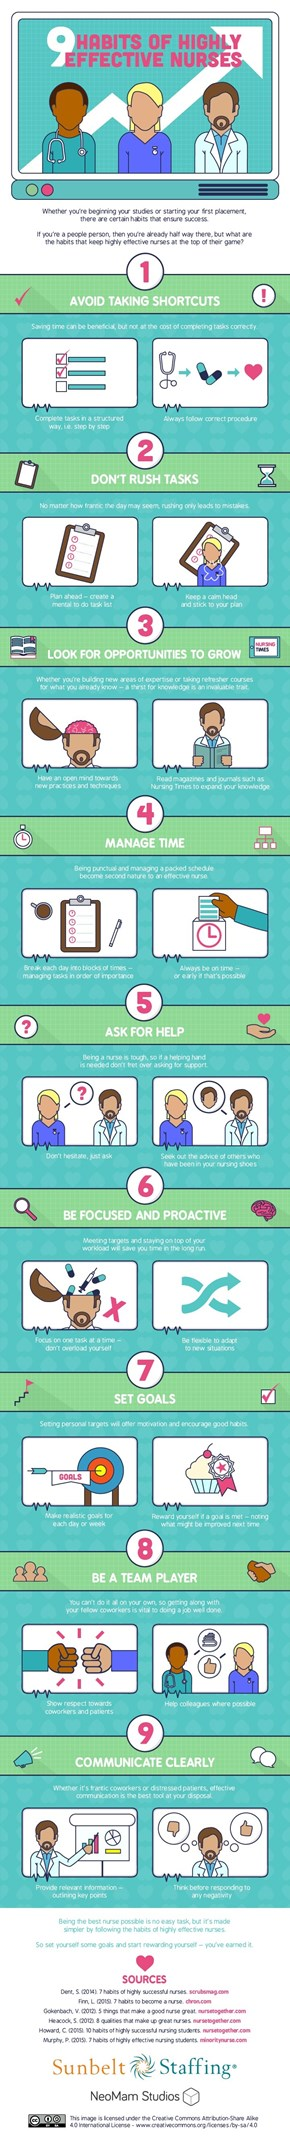 9 Habits of Highly Effective Nurses